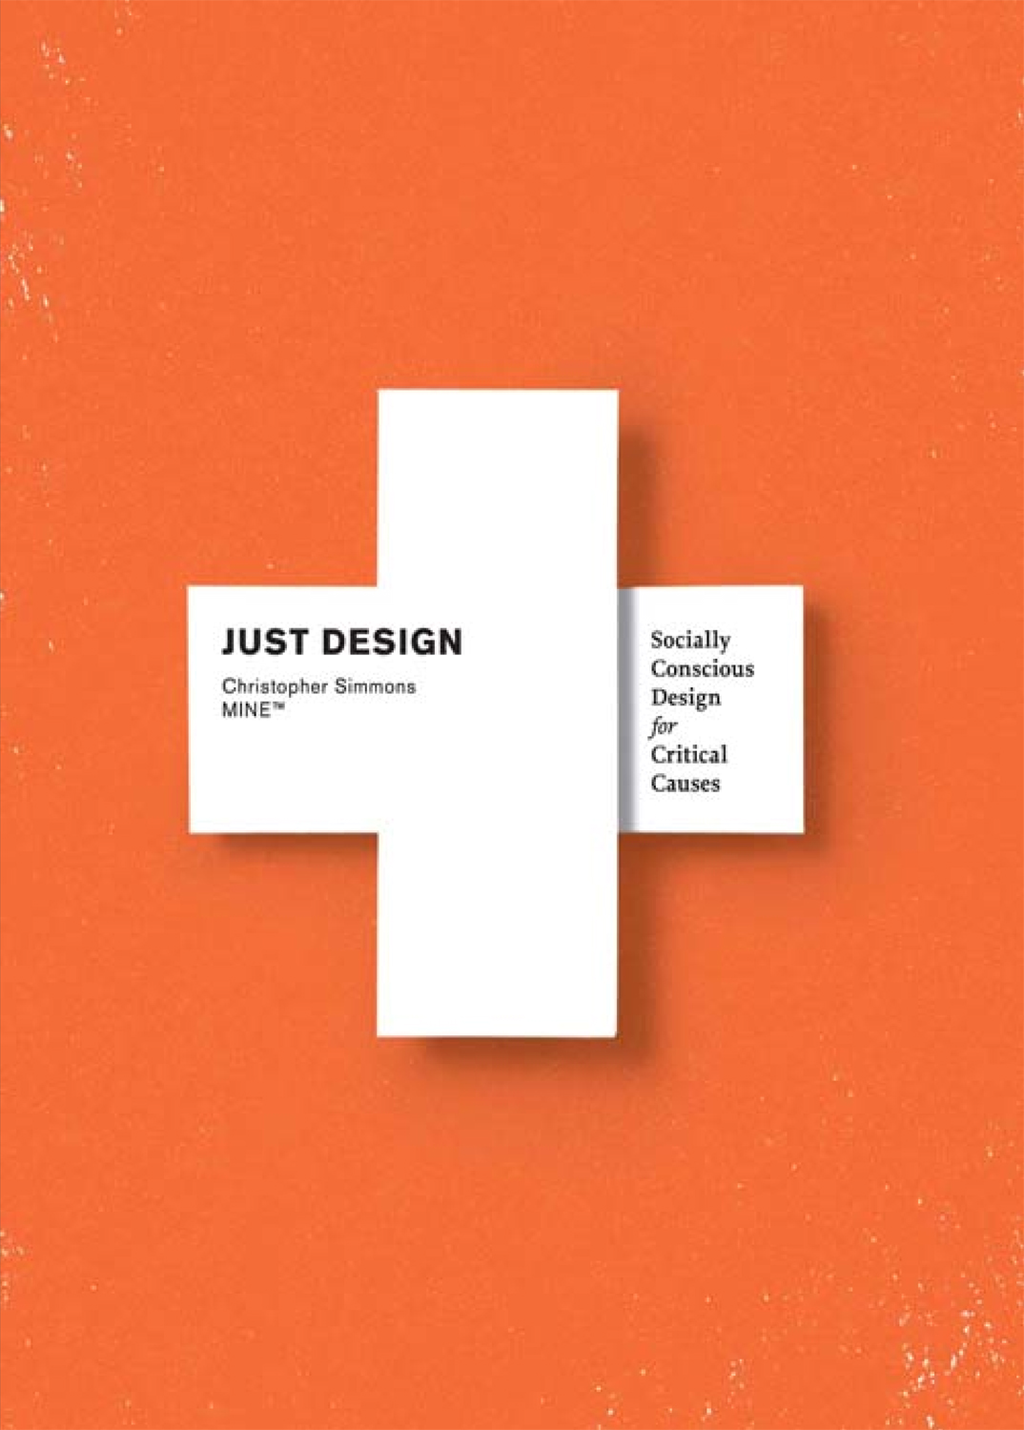 Just Design Socially Conscious Design for Critical Causes